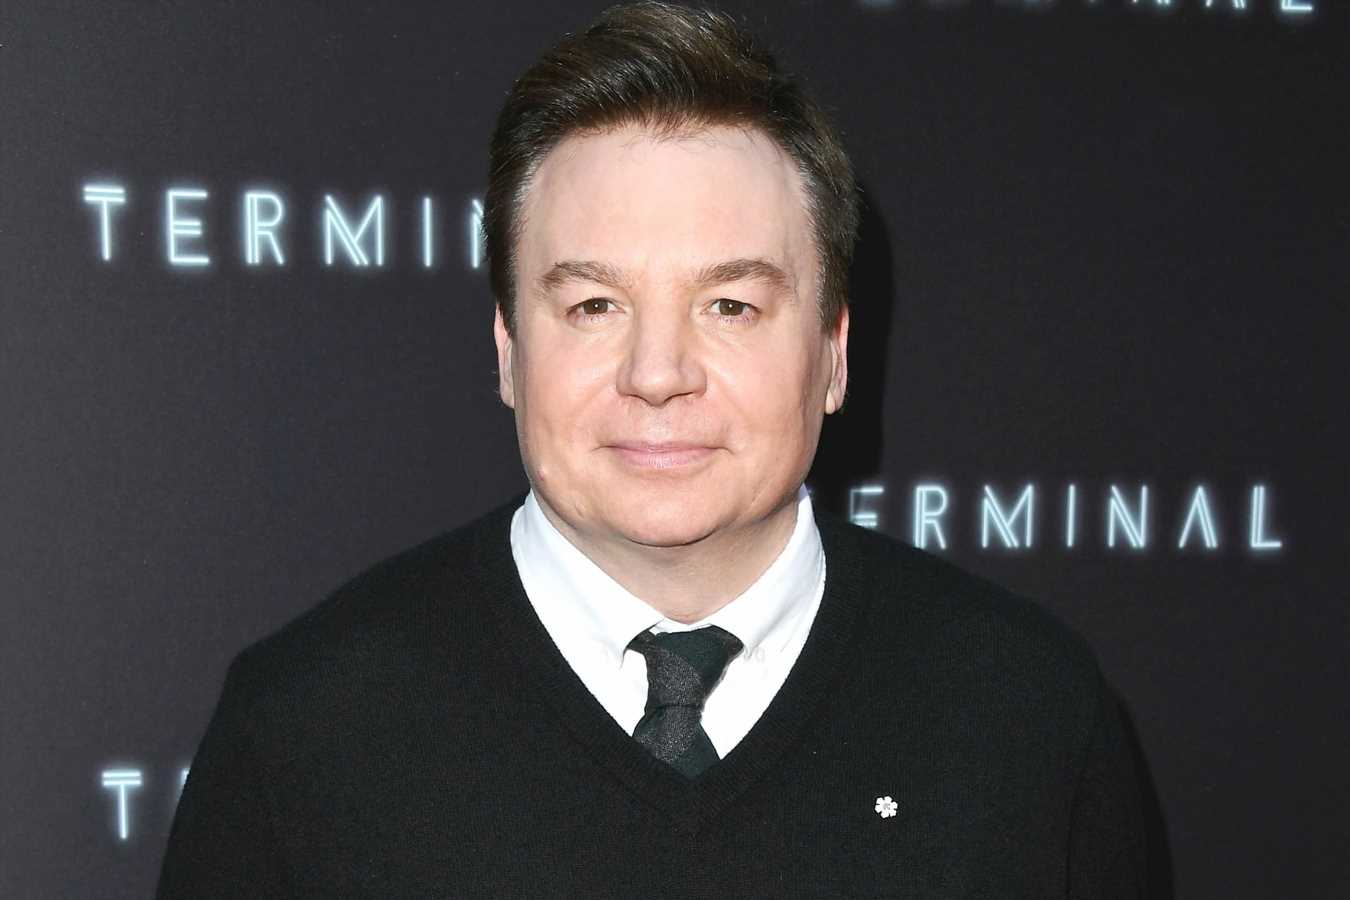 Mike Myers to star in new Netflix comedy series